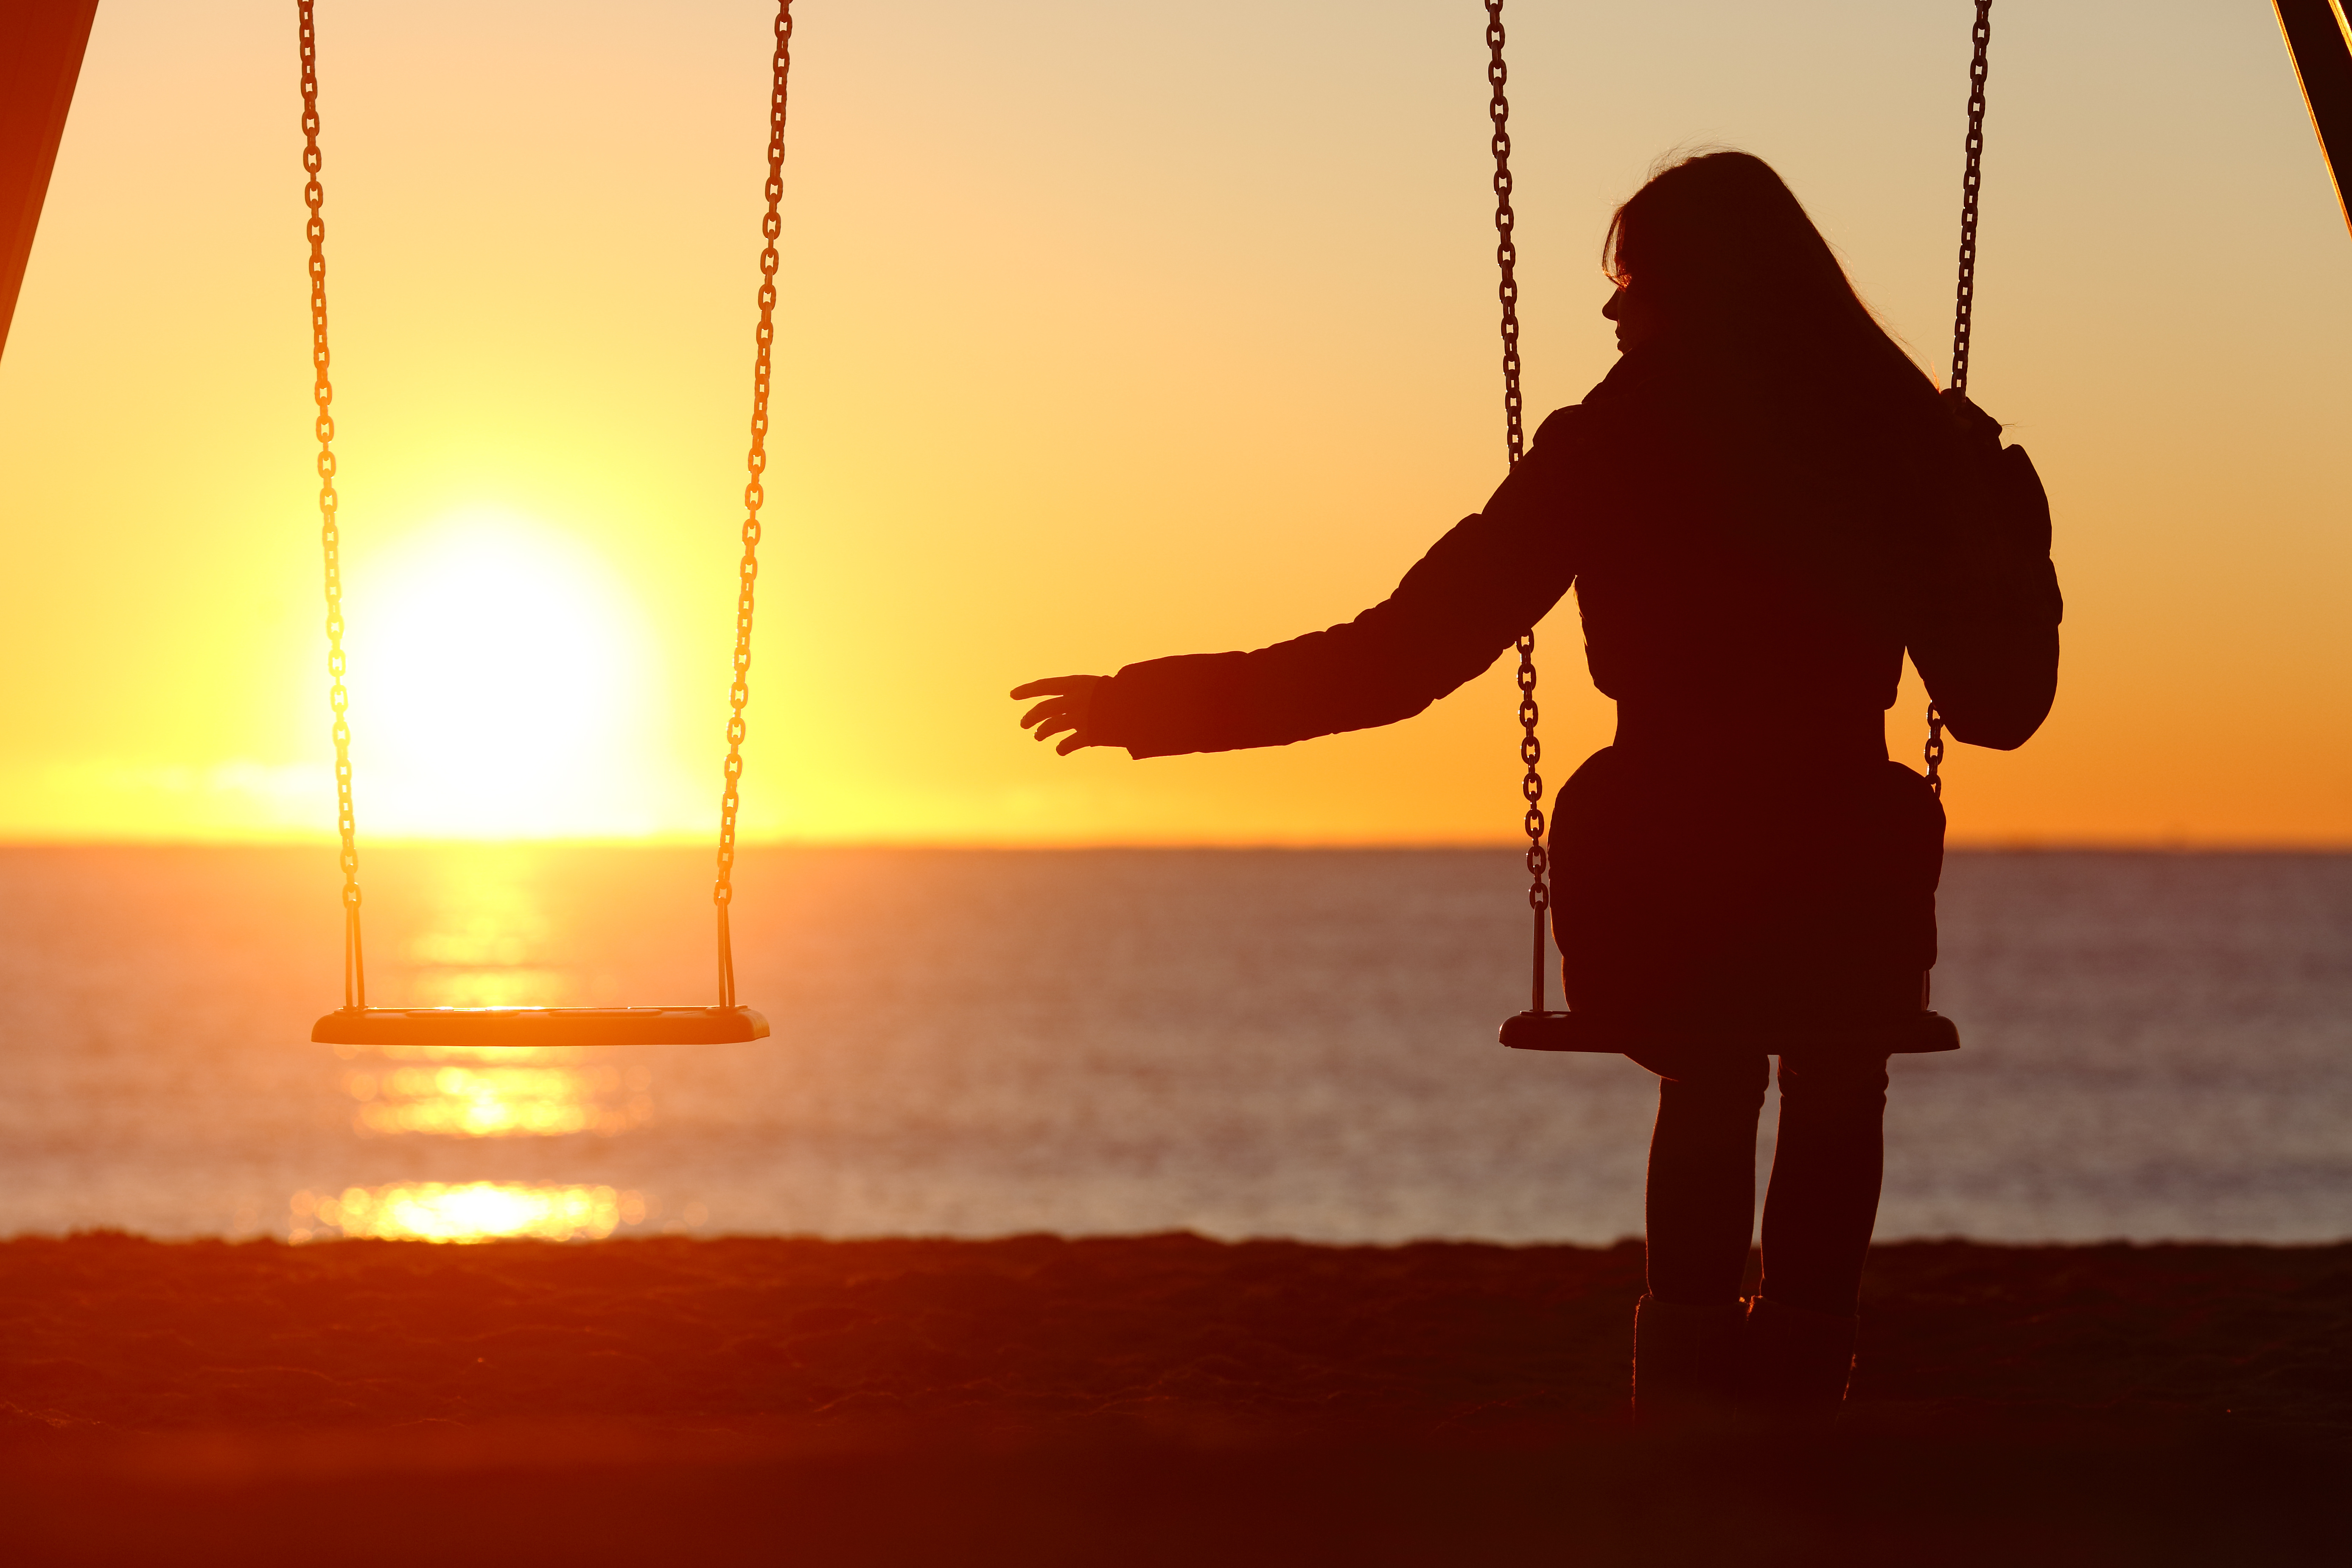 Bereaved woman alone missing a partner while swinging on the beach at sunset